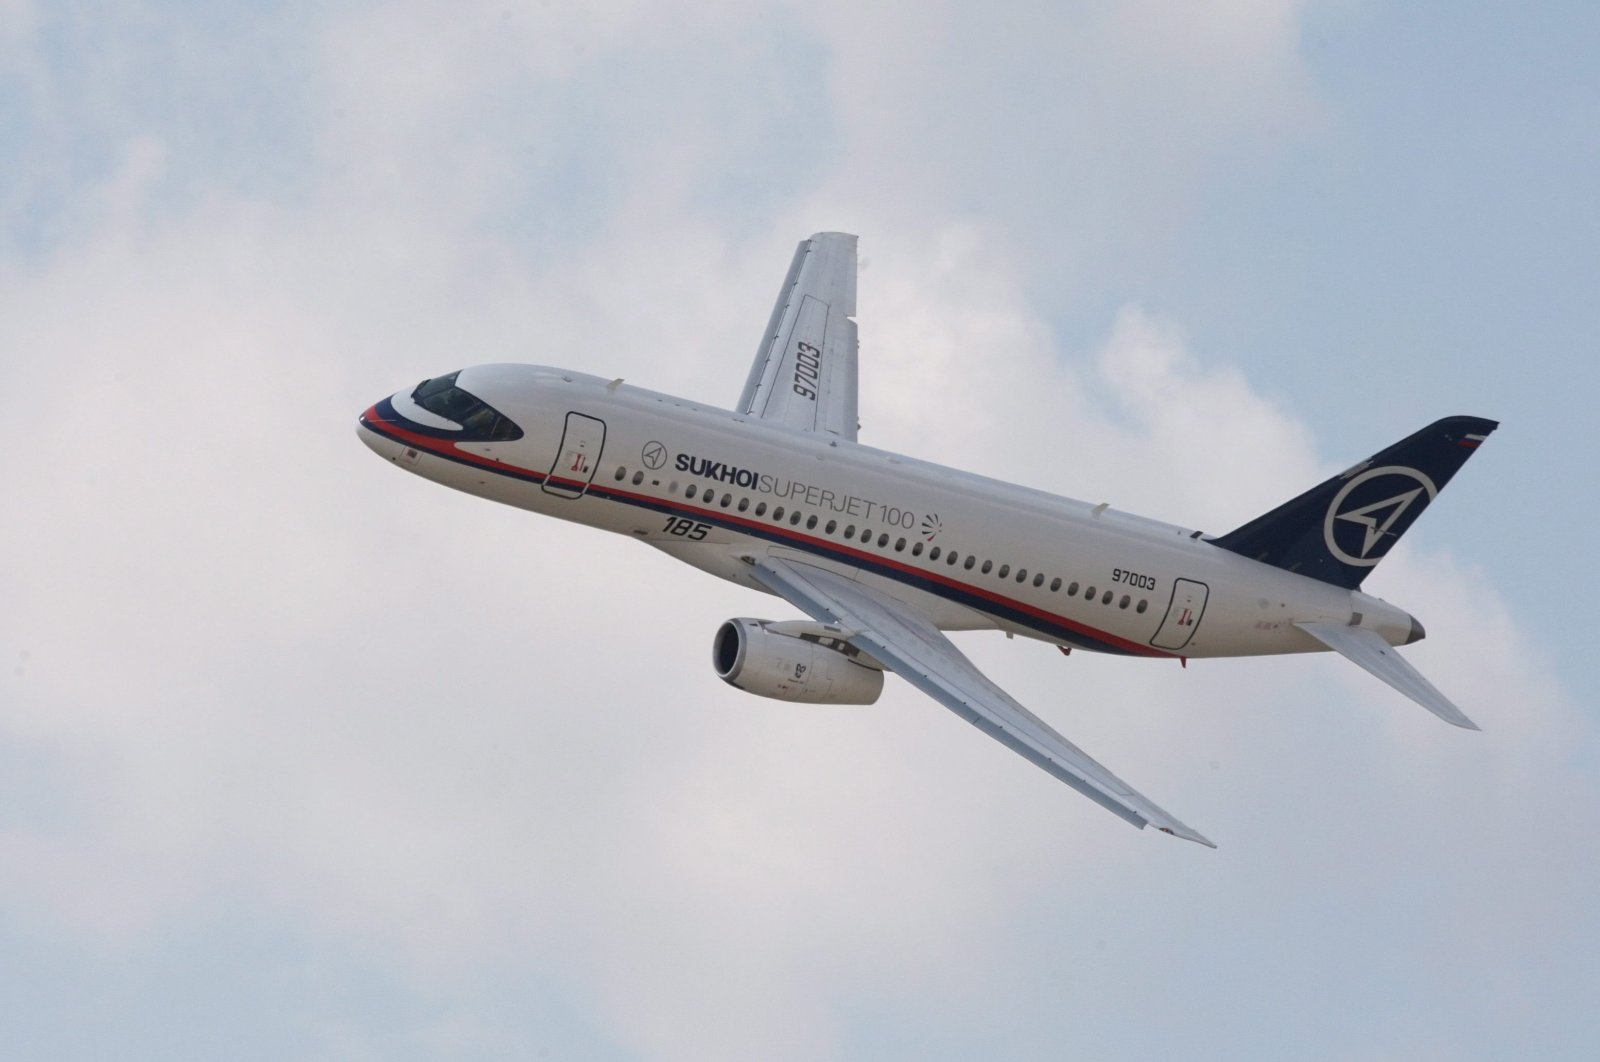 A Sukhoi Superjet 100 airplane maneuvers during the Moscow International Air-Space show MAKS 2009 in Jhukovsky, Russia, Aug. 18, 2009. (EPA File Photo)